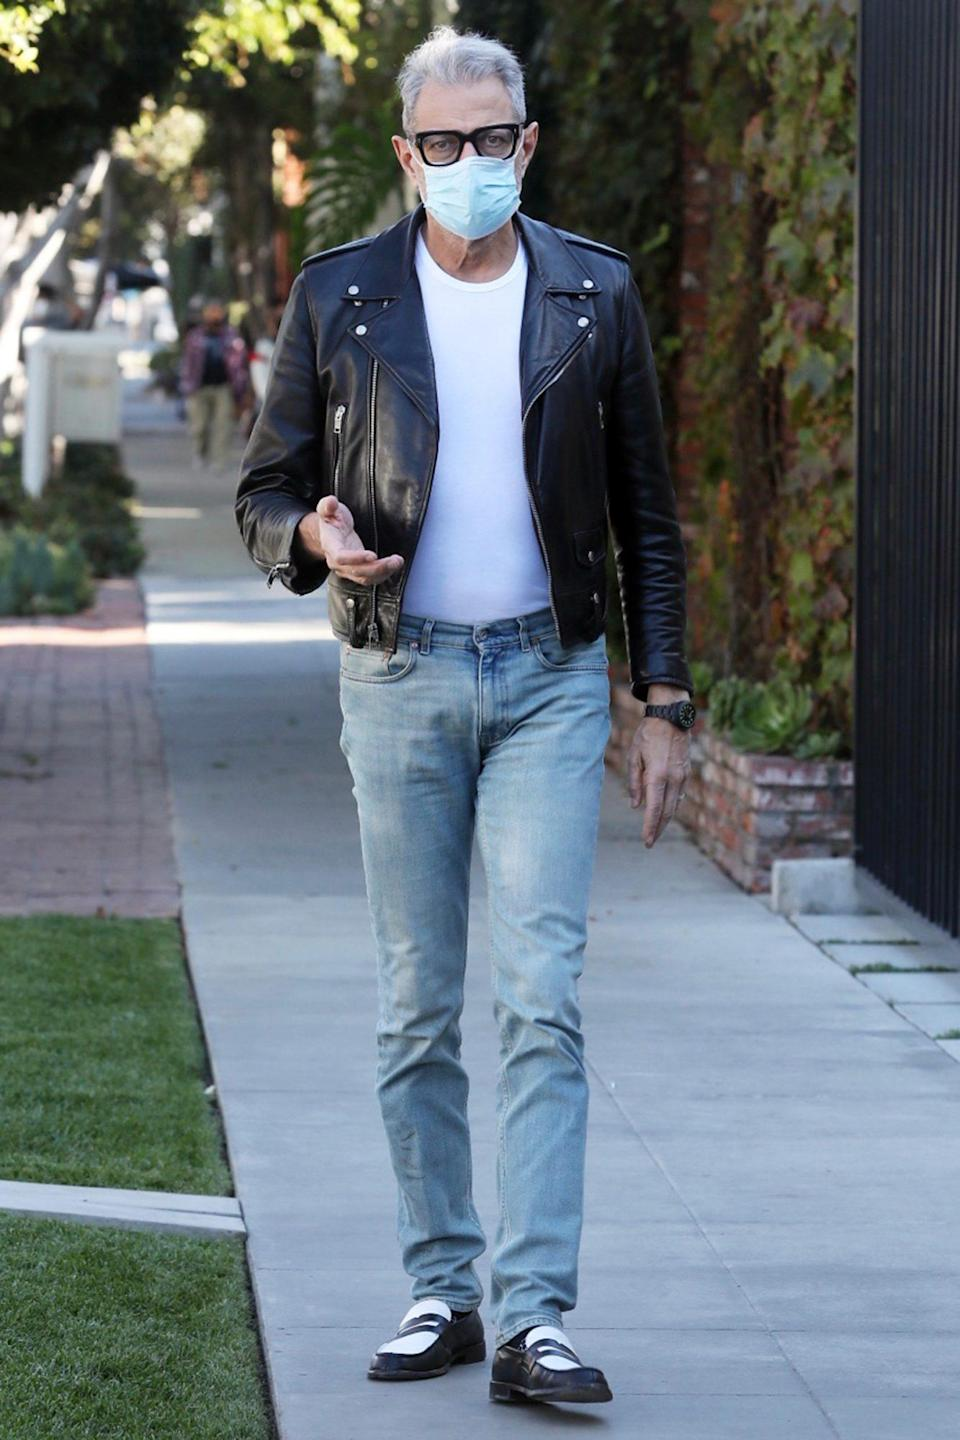 <p>Jeff Goldblum arrives at Melrose Place in L.A. on Tuesday, wearing a leather jacket and jeans.</p>